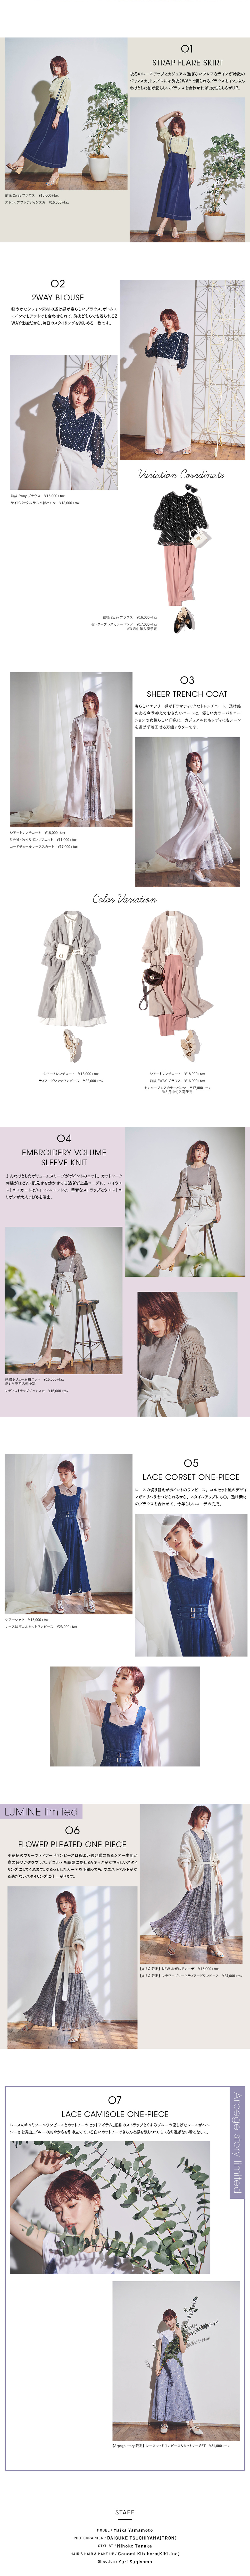 WEB ALBUM vol.48 - Rirandture × 山本舞香